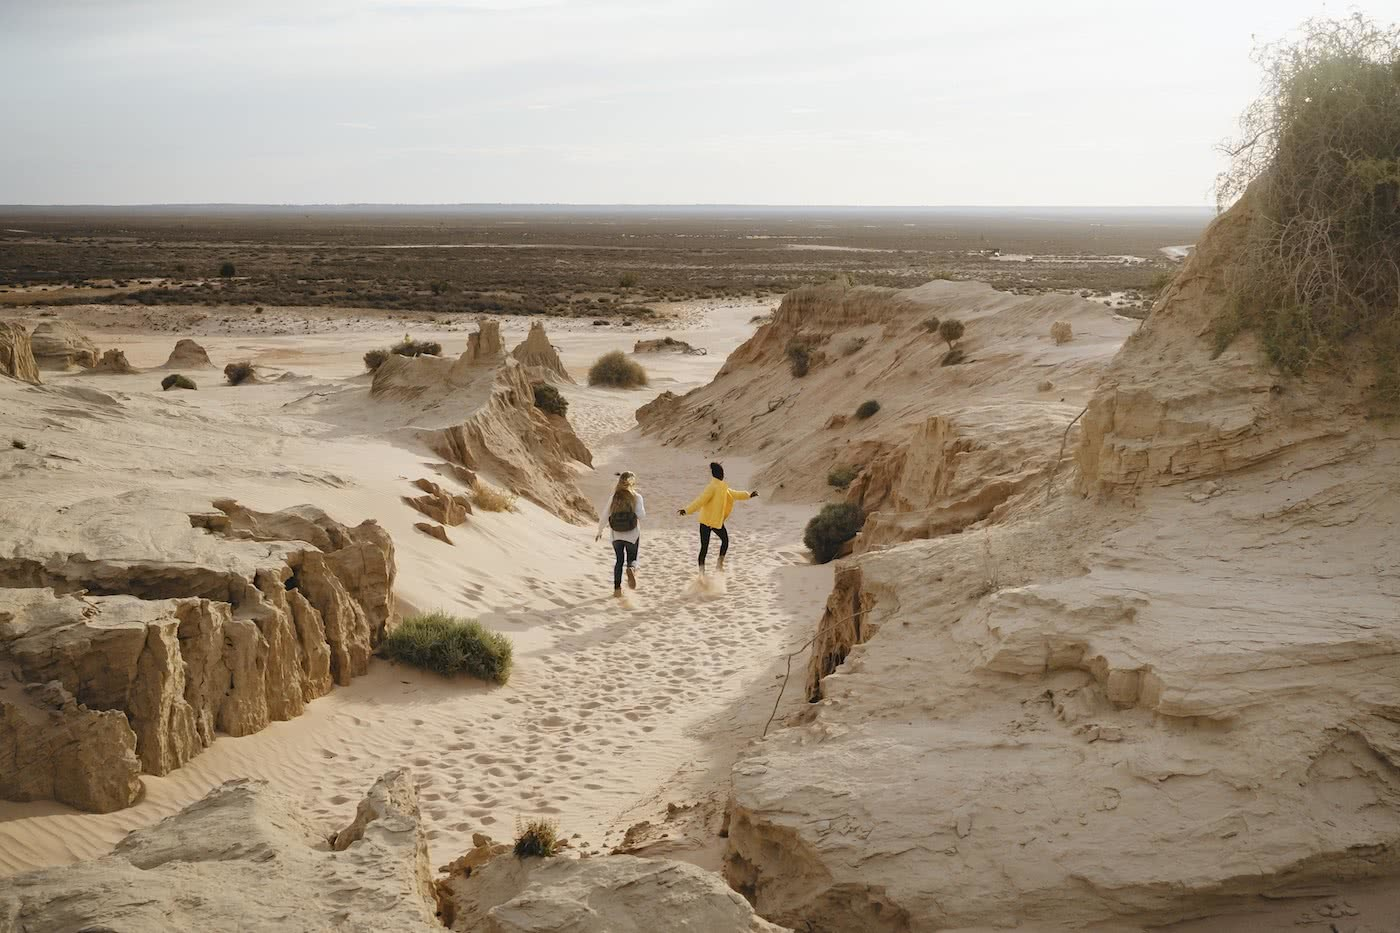 Australia's Oldest Human Remains Can Be Found Where The Outback Meets The Wetlands, photo by Ain Raadik, walls of china, Mungo National Park, Riverina, Murray, Destination NSW, sand dunes, women, run, desert, plains